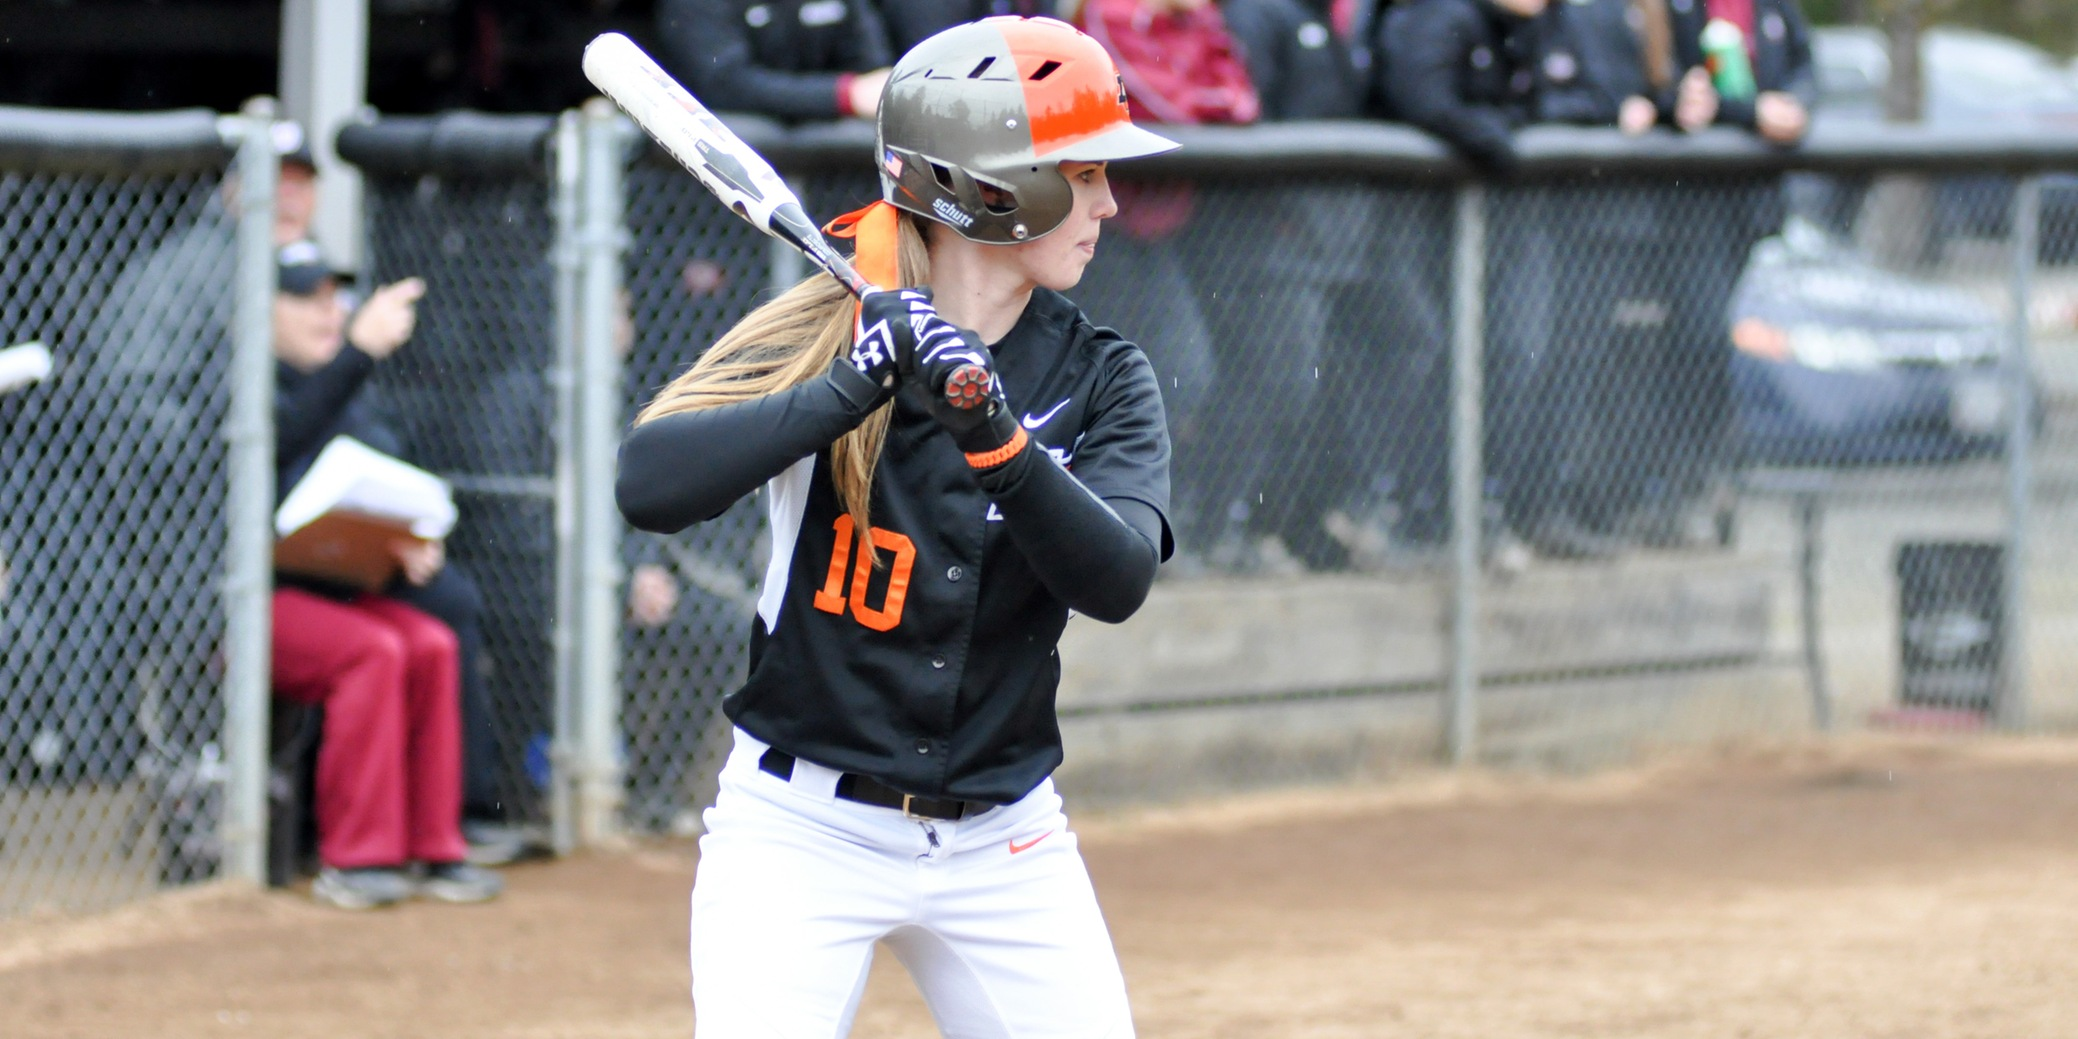 Yearman's home run and Rooney's complete-game shutout spark split with George Fox